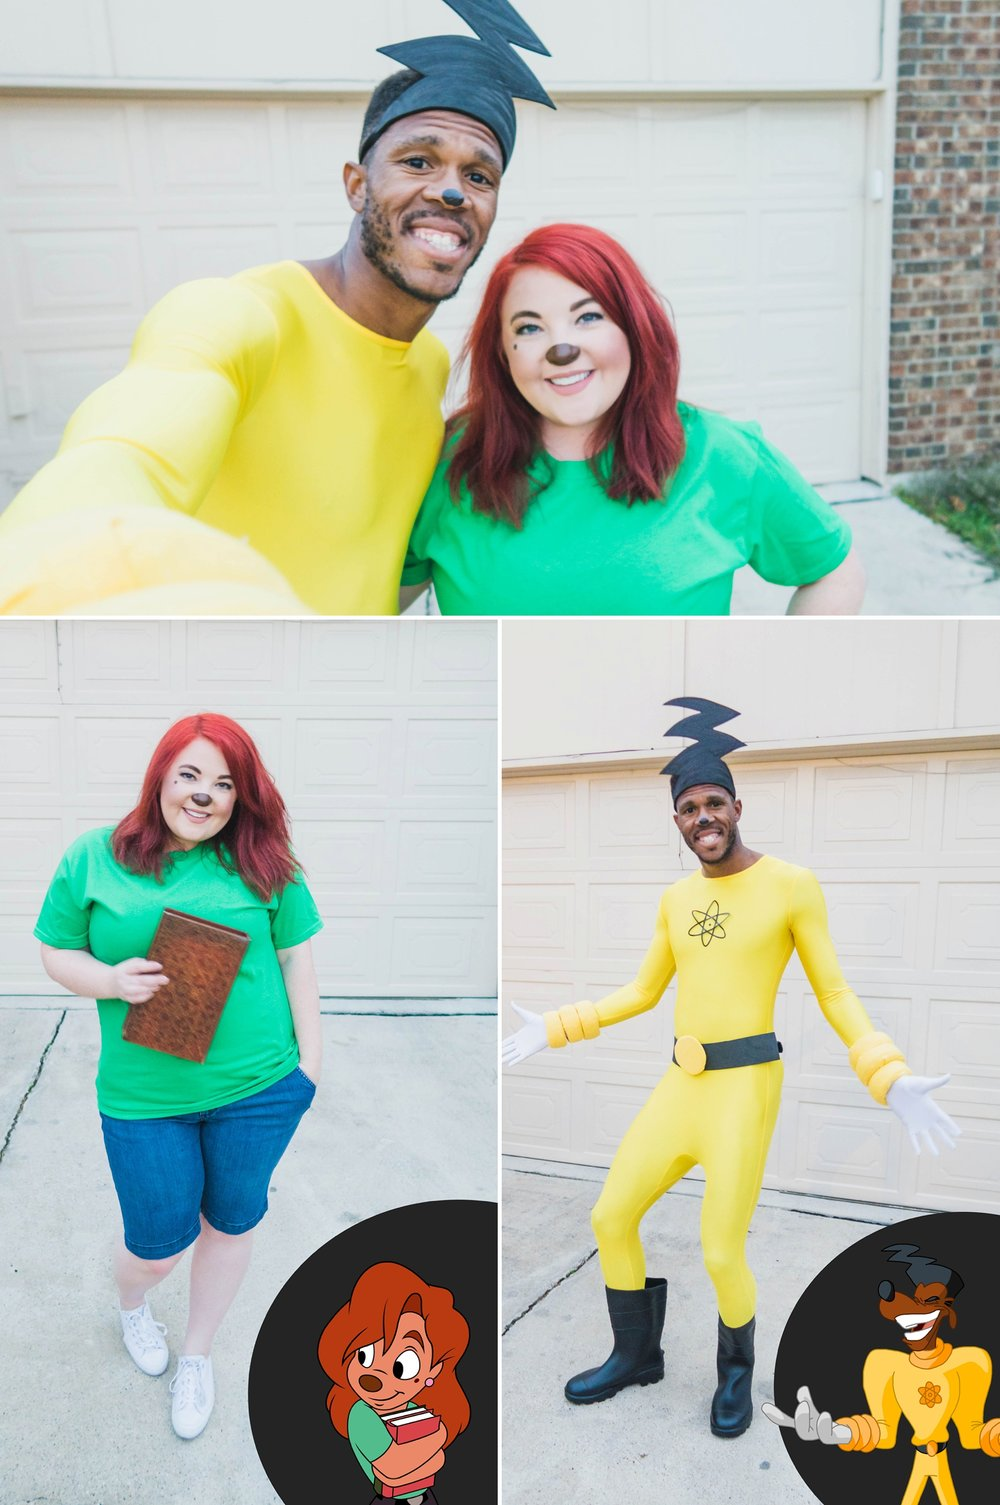 costume-goofy-movie-powerline-roxanne